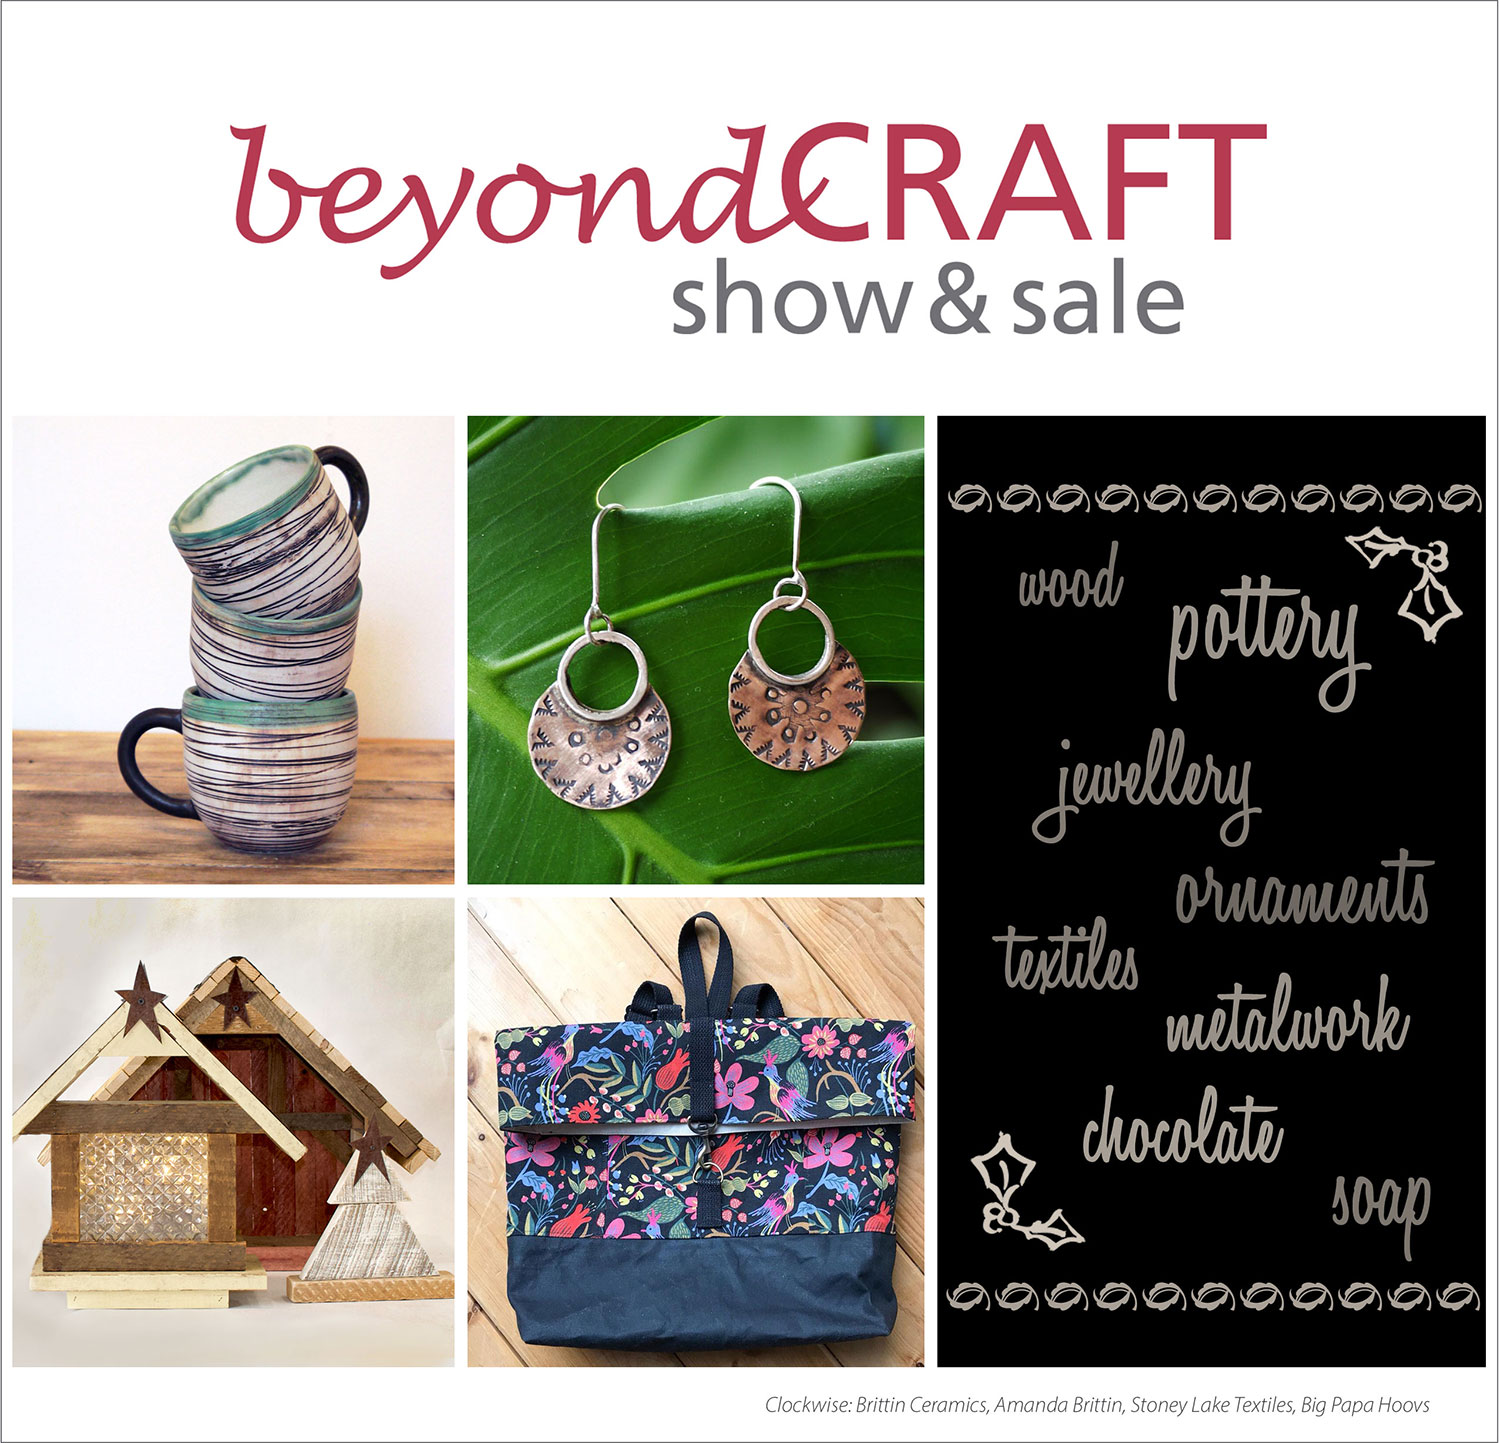 Beyond Craft show and sale